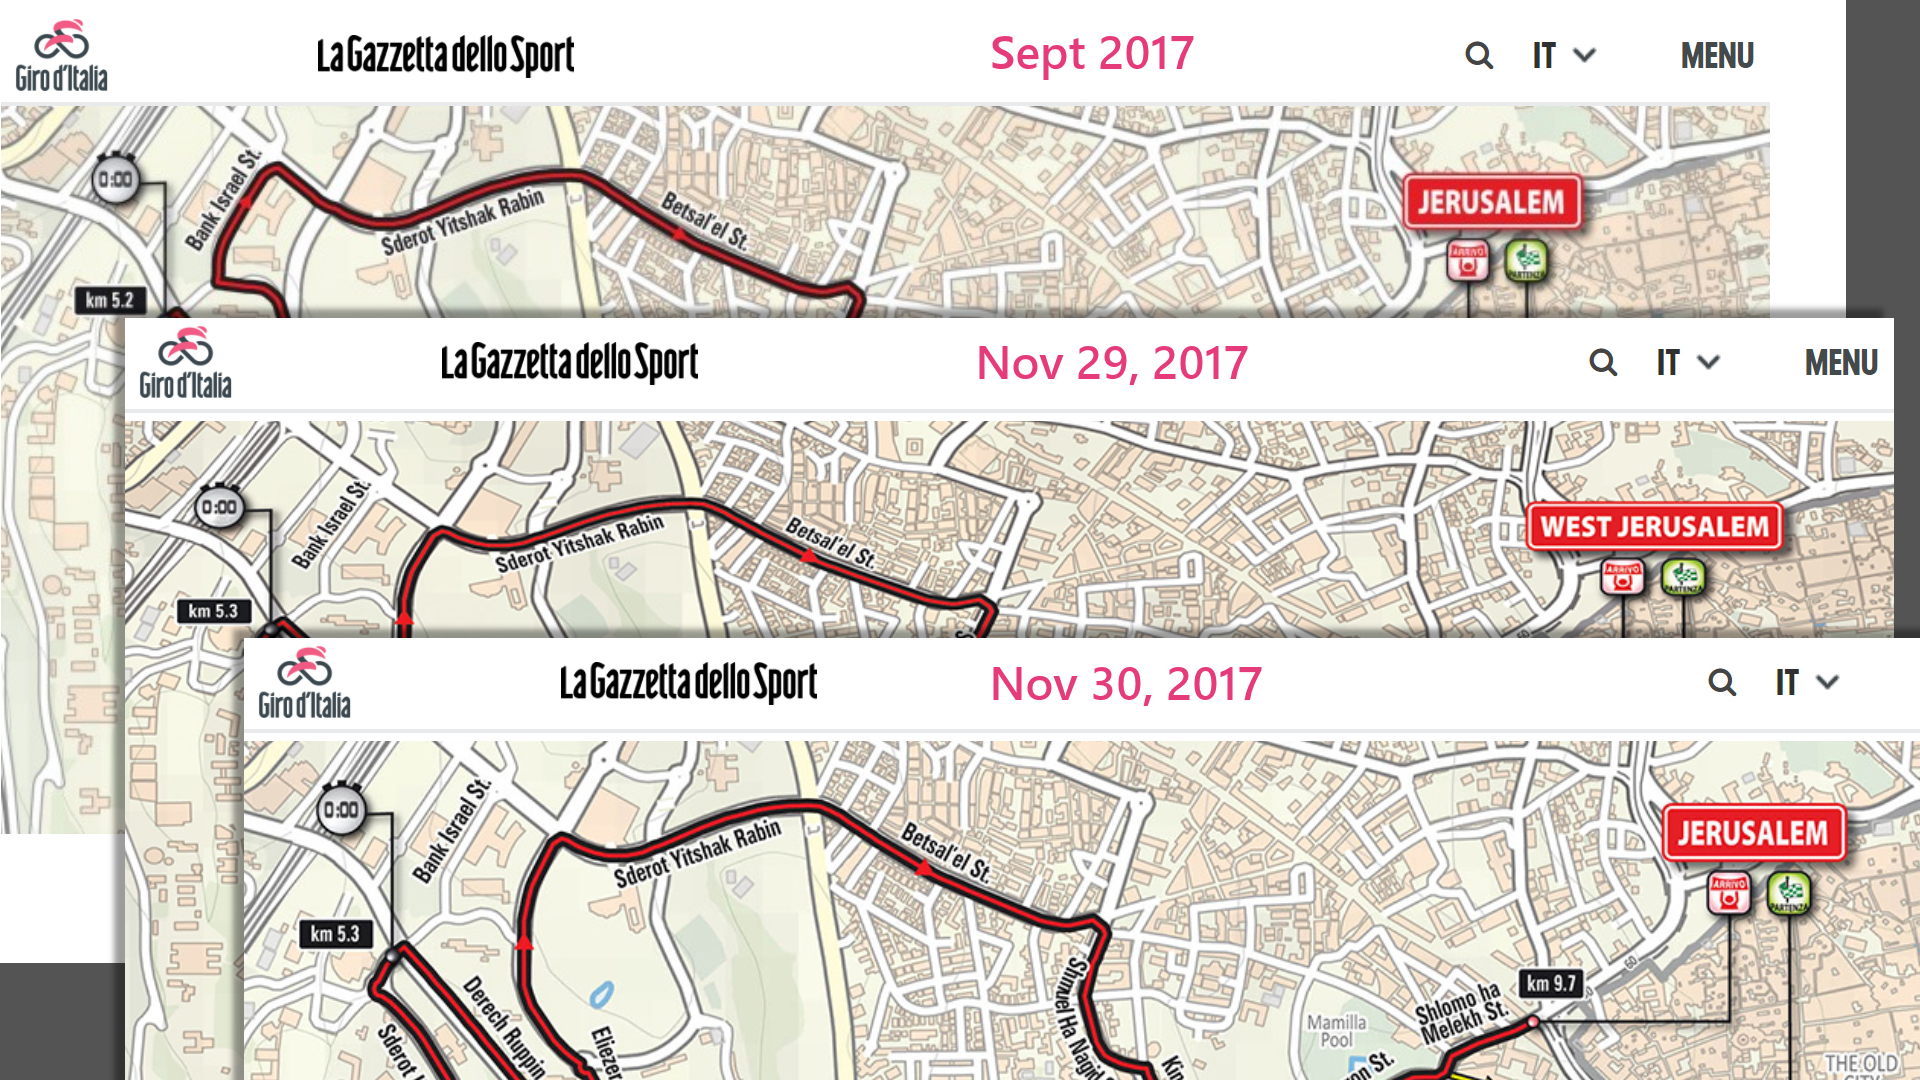 """Giro d'Italia before and after images of """"West Jerusalem"""""""